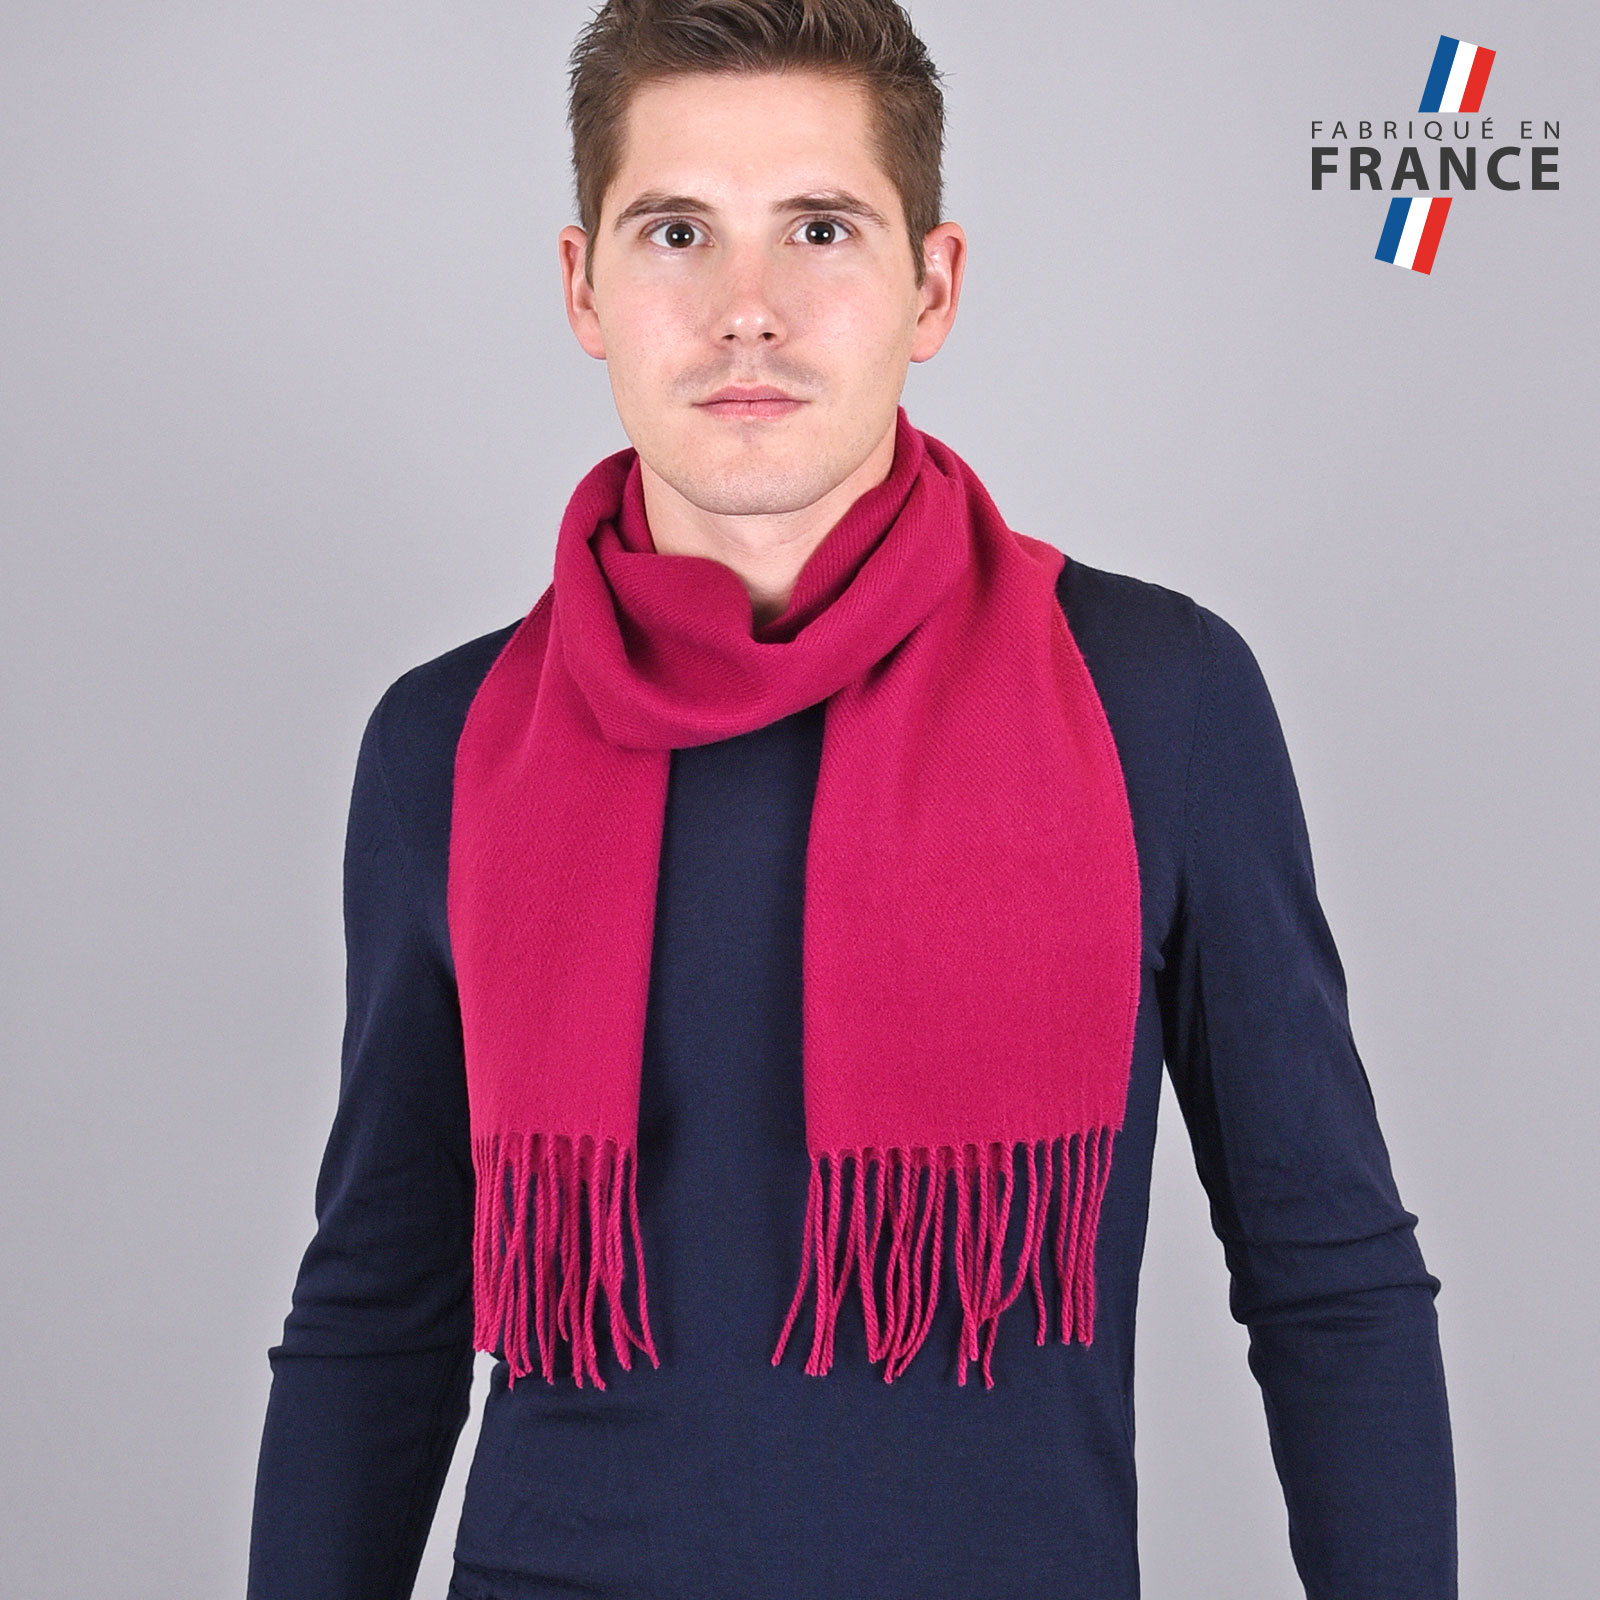 AT-03240-VH16-LB_FR-echarpe-homme-a-franges-rose-fuchsia-fabrication-francaise